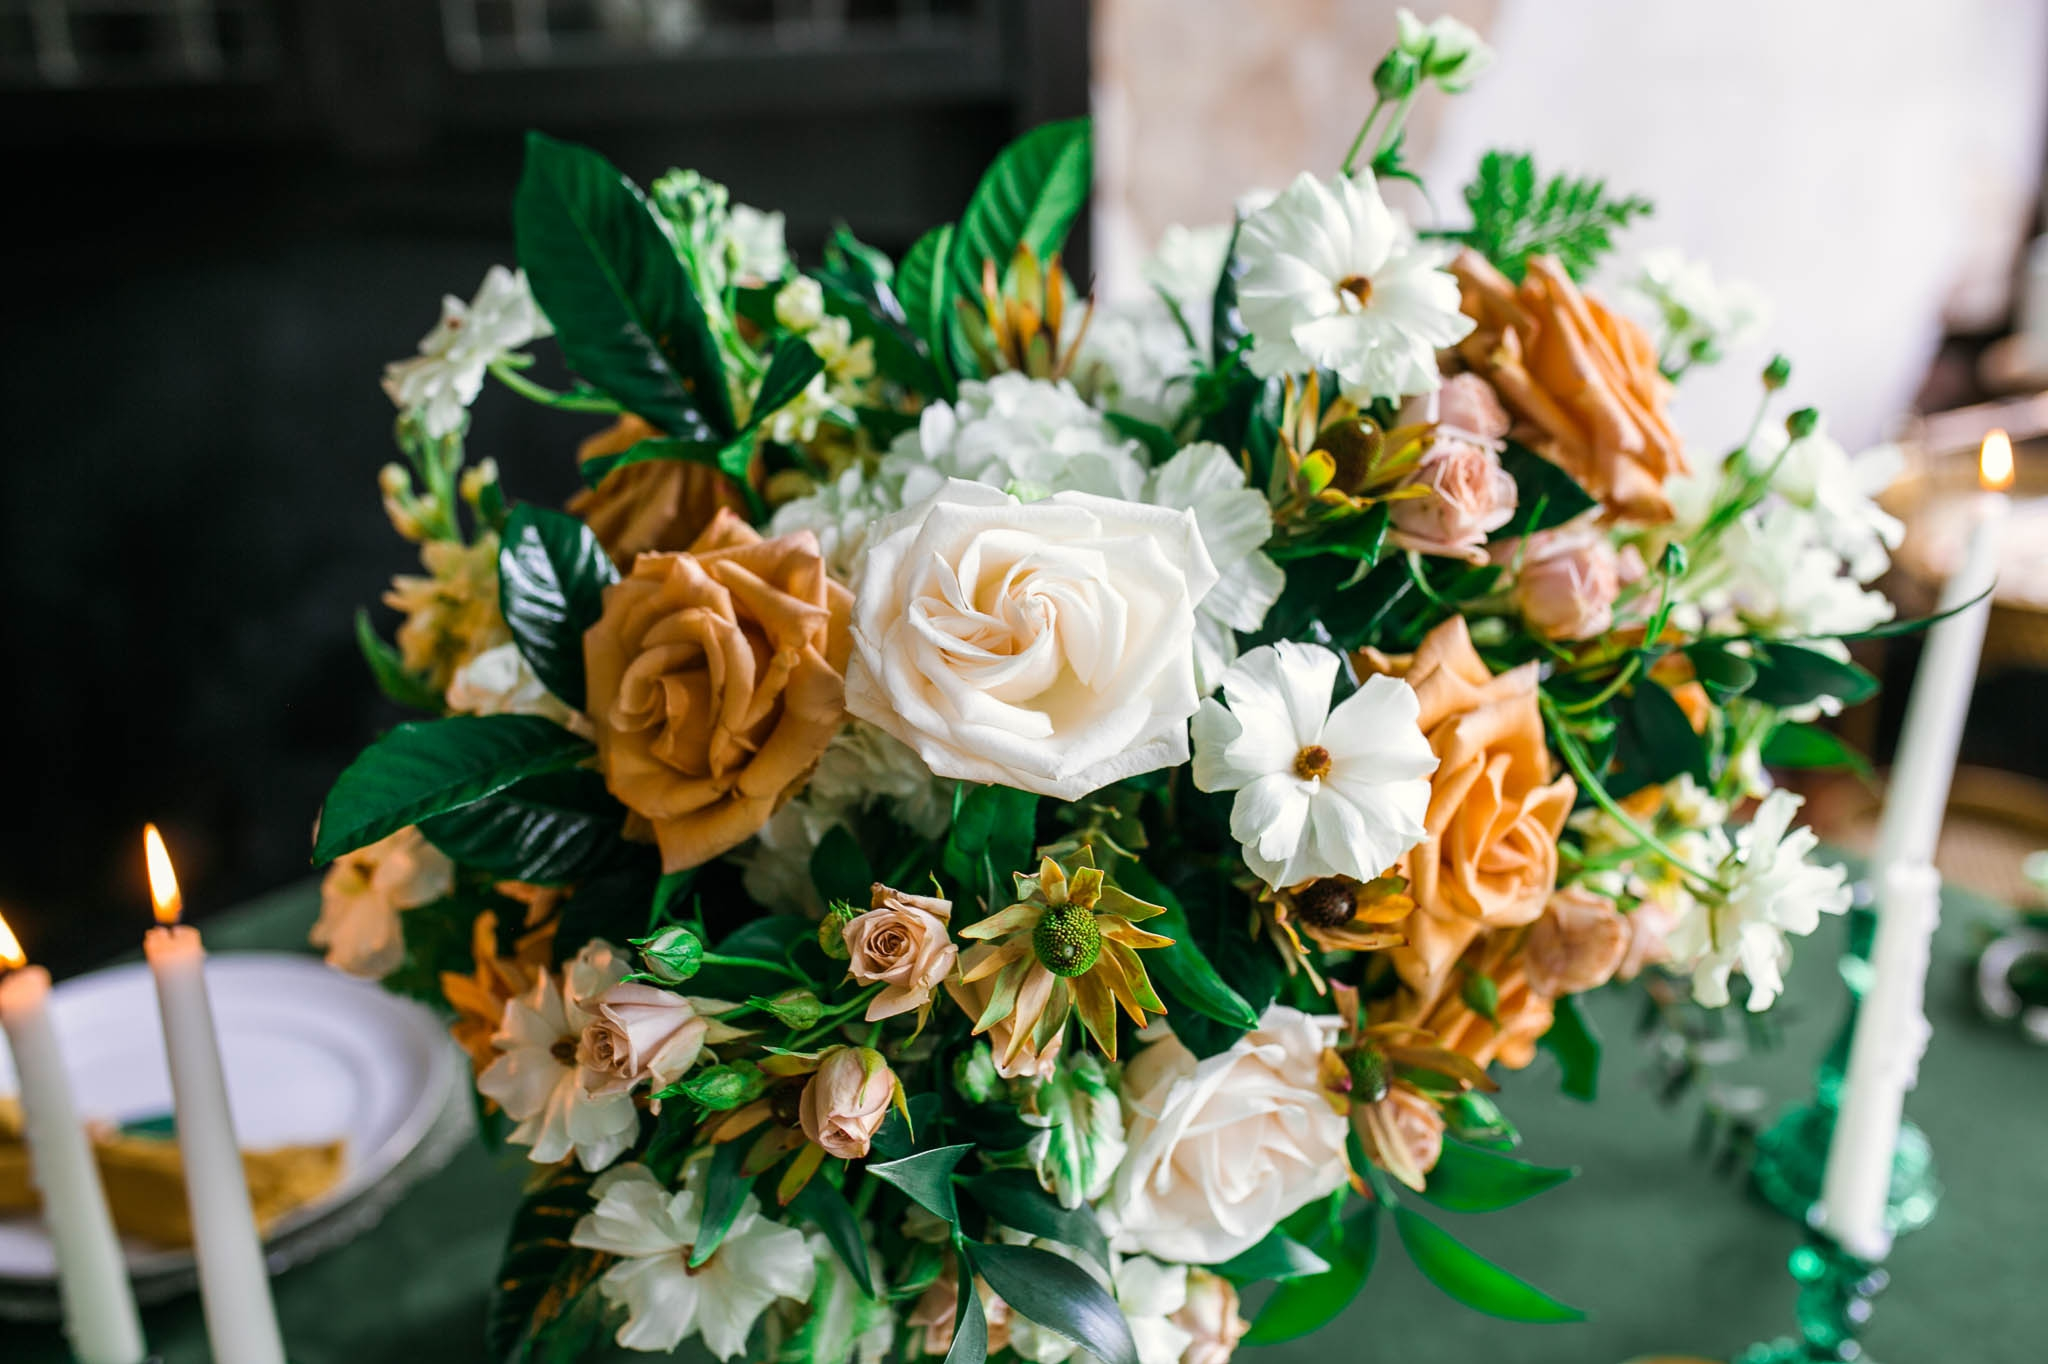 Green and Emerald Wedding Inspiration for the Guest Reception Tables - Close up of the Centerpiece - Oahu Hawaii Wedding Photographer